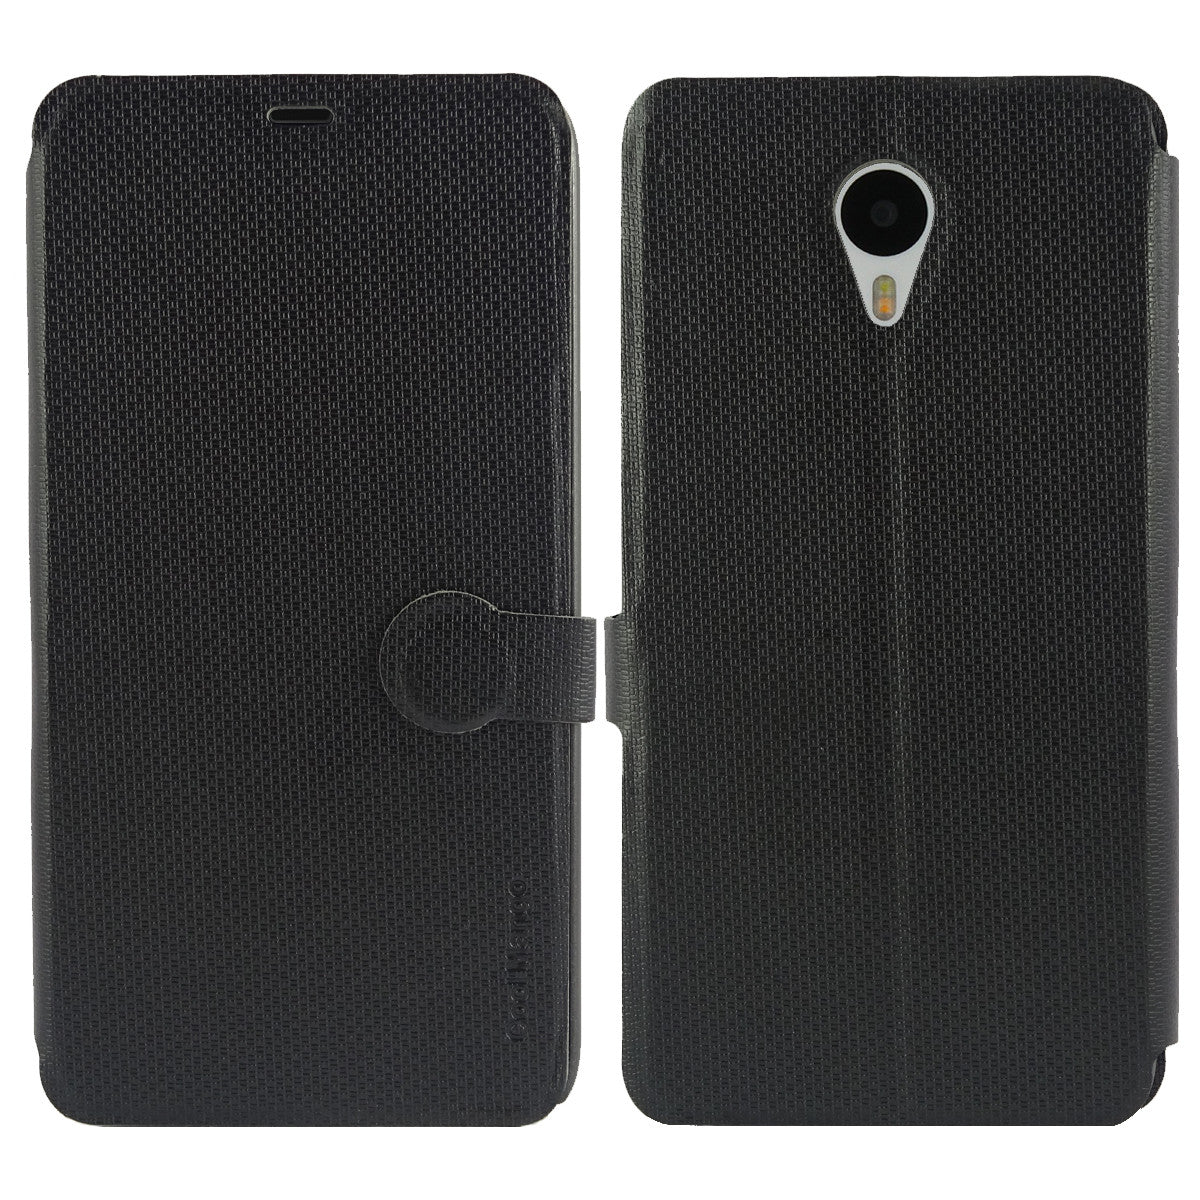 iMaterial Flip Cover for Meizu m1 note - Royal Black